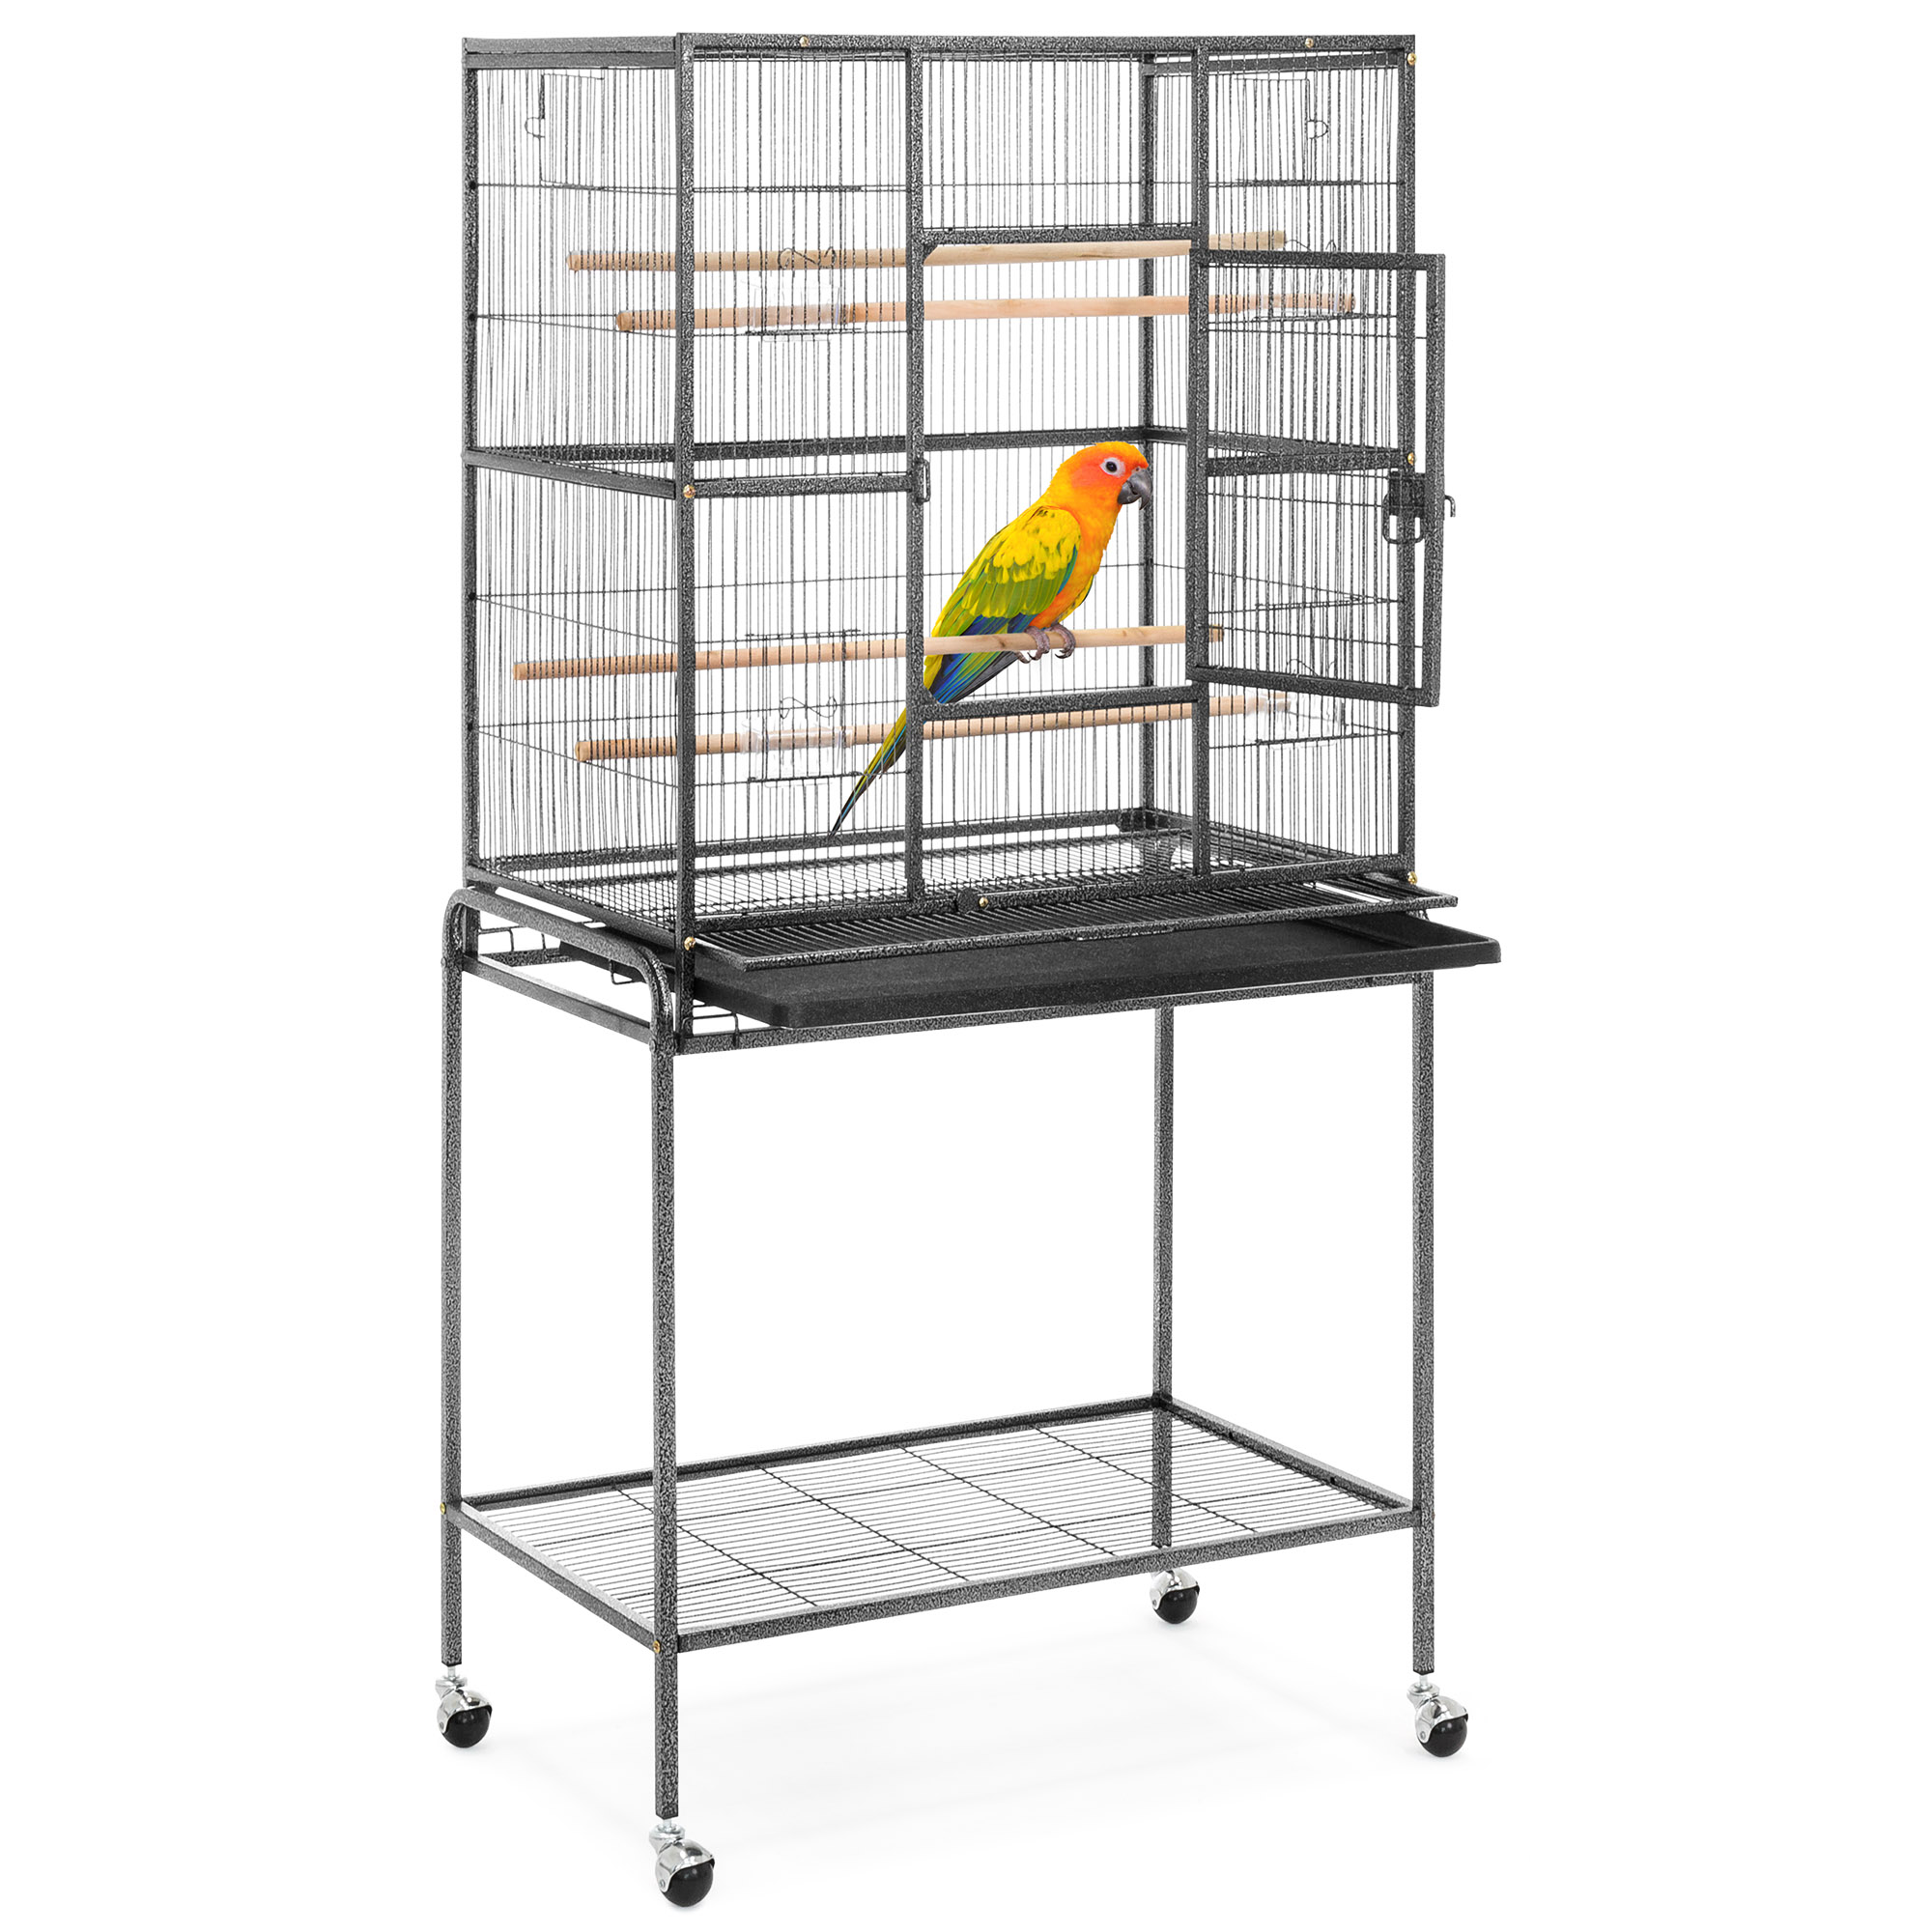 Best Choice Products 53in Portable Iron Pet Parrot Bird Cage w/ Rolling Stand, 2 Wooden Perches, 4 Feeding Bowls & Doors